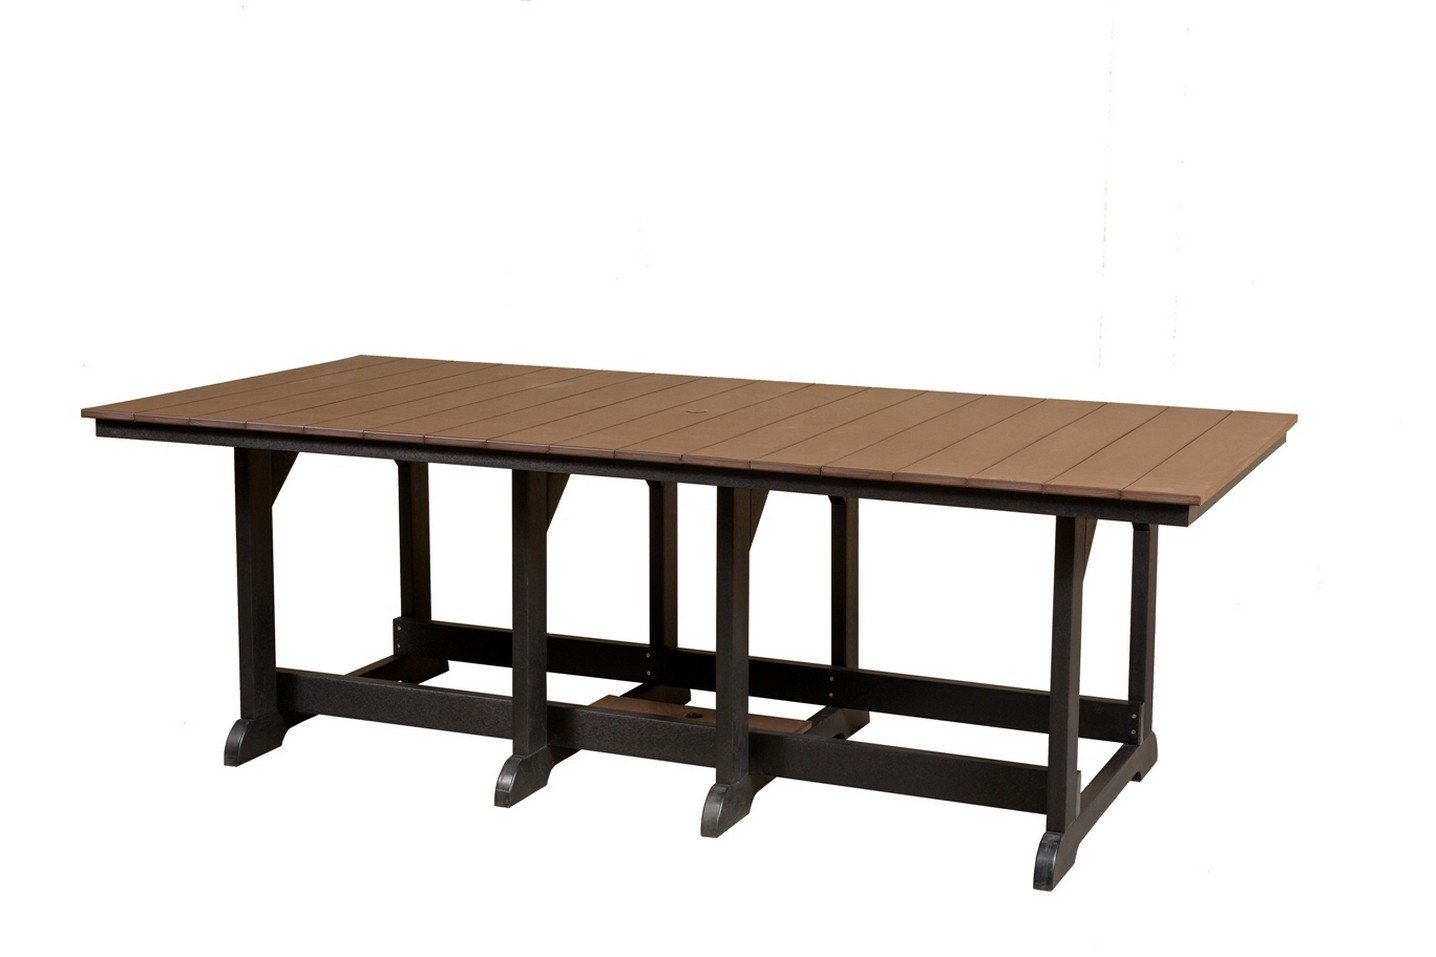 Little Cottage Company Lcc-191 Heritage Table, 44'' x 94'', Light Gray